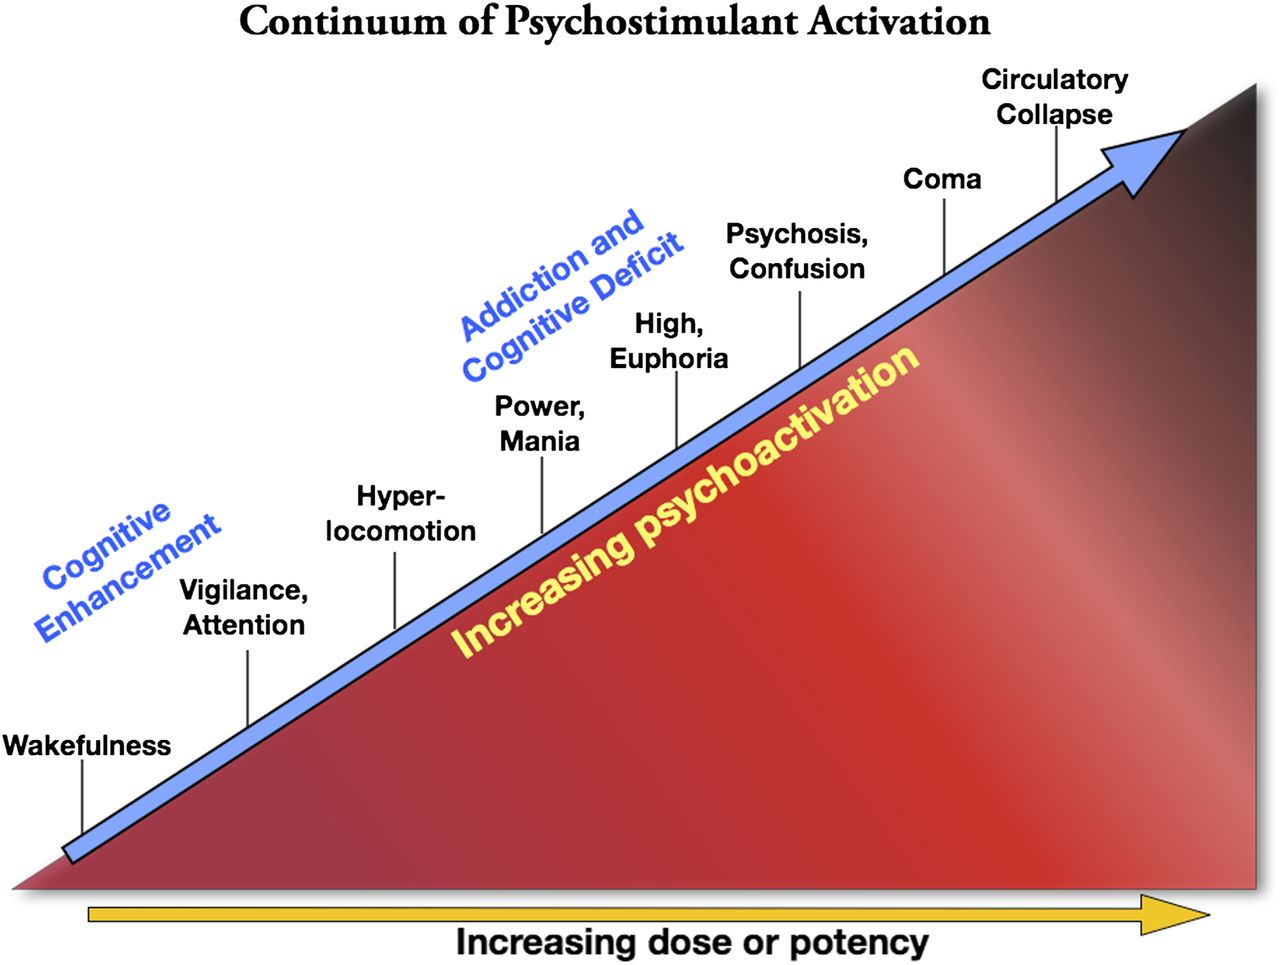 Psychostimulants and Cognition: A Continuum of Behavioral and